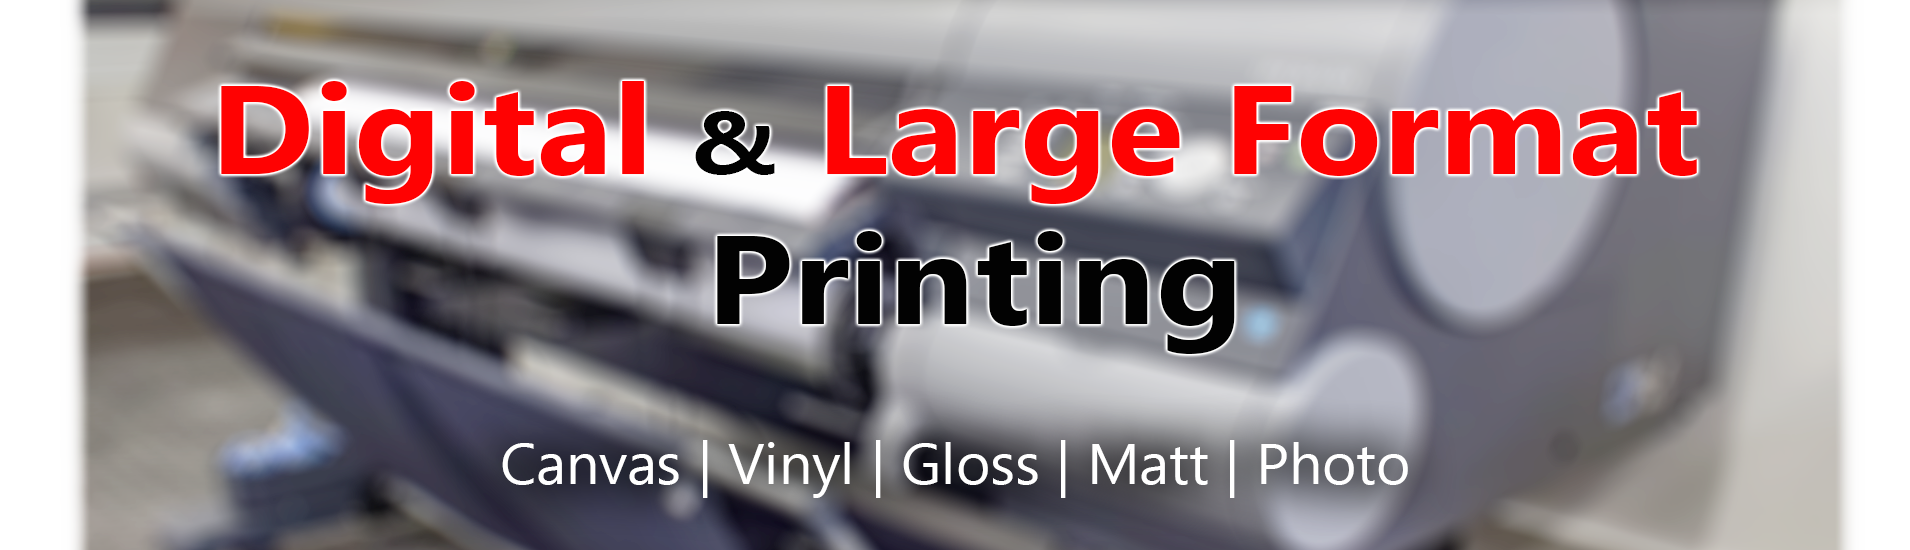 Digital-Printing-Header1910x550